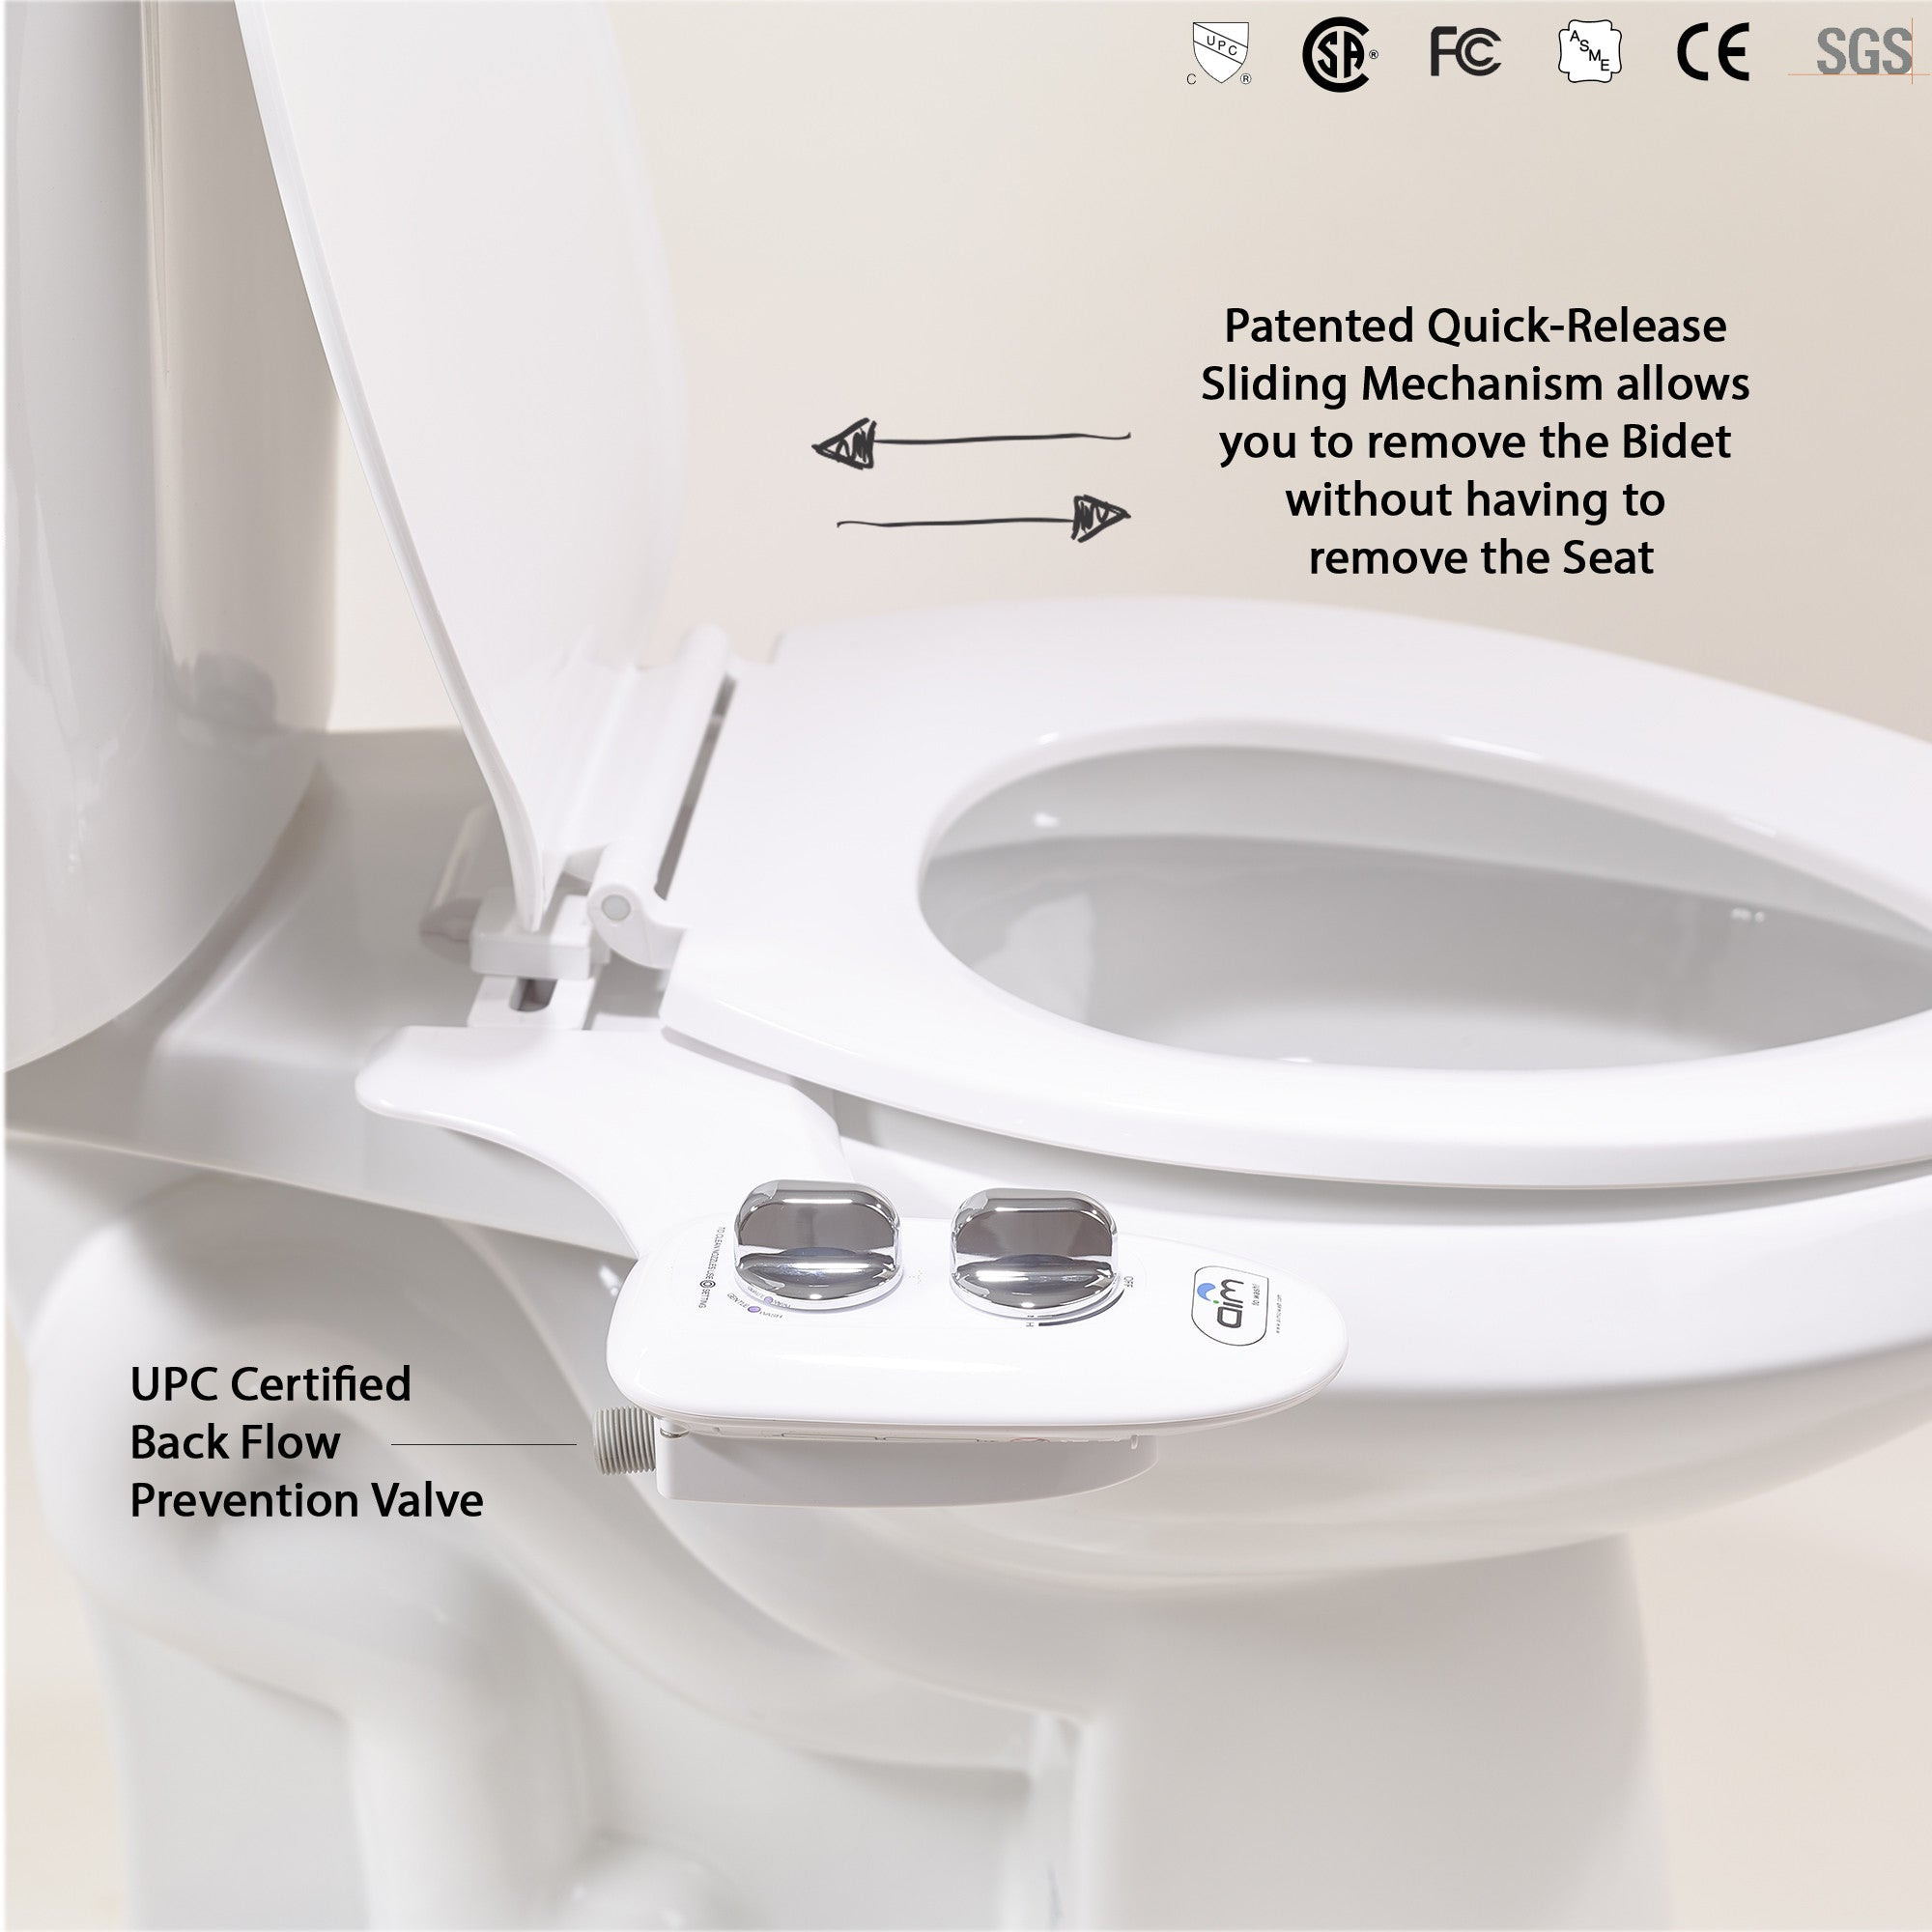 Chrome night lamps -  Mechanical Bidets Bidet Attachment Toilet Night Light Quick Release Aim To Wash